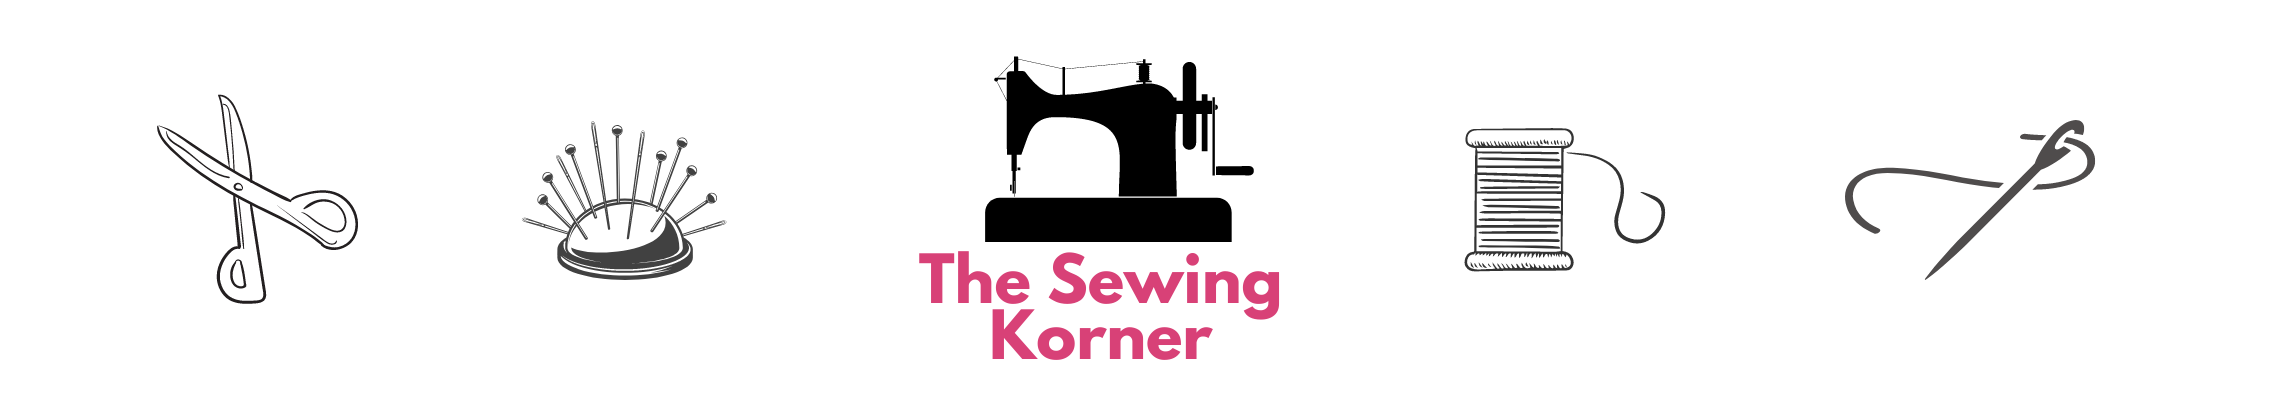 The Sewing Korner